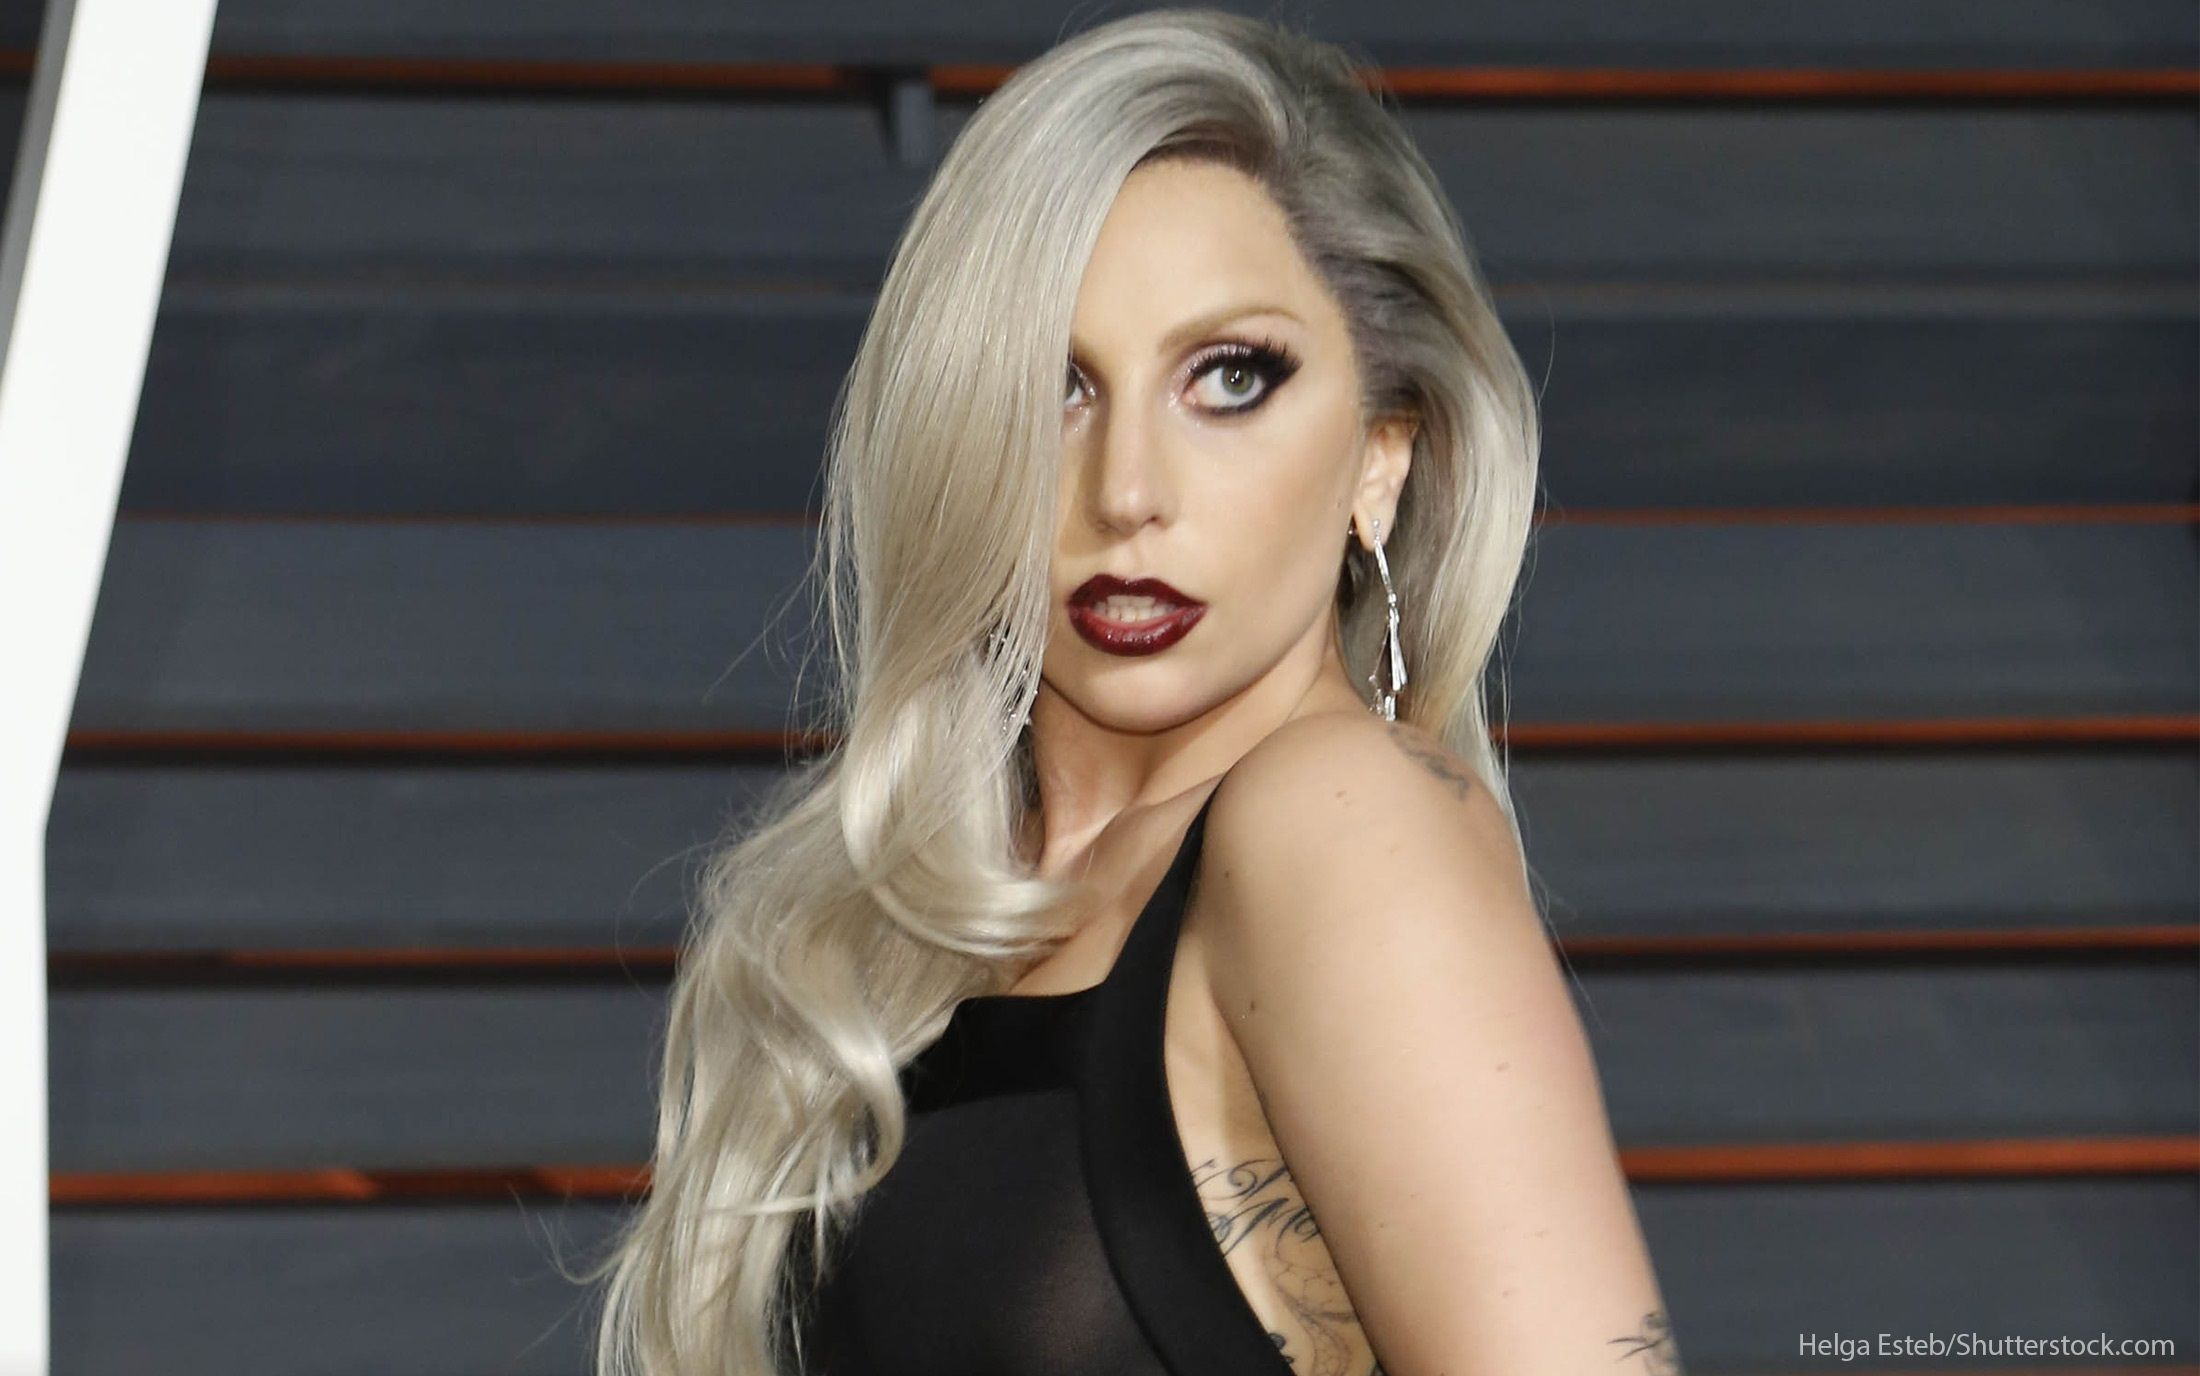 Lady Gaga's Net Worth How She Went From 'The Fame' to